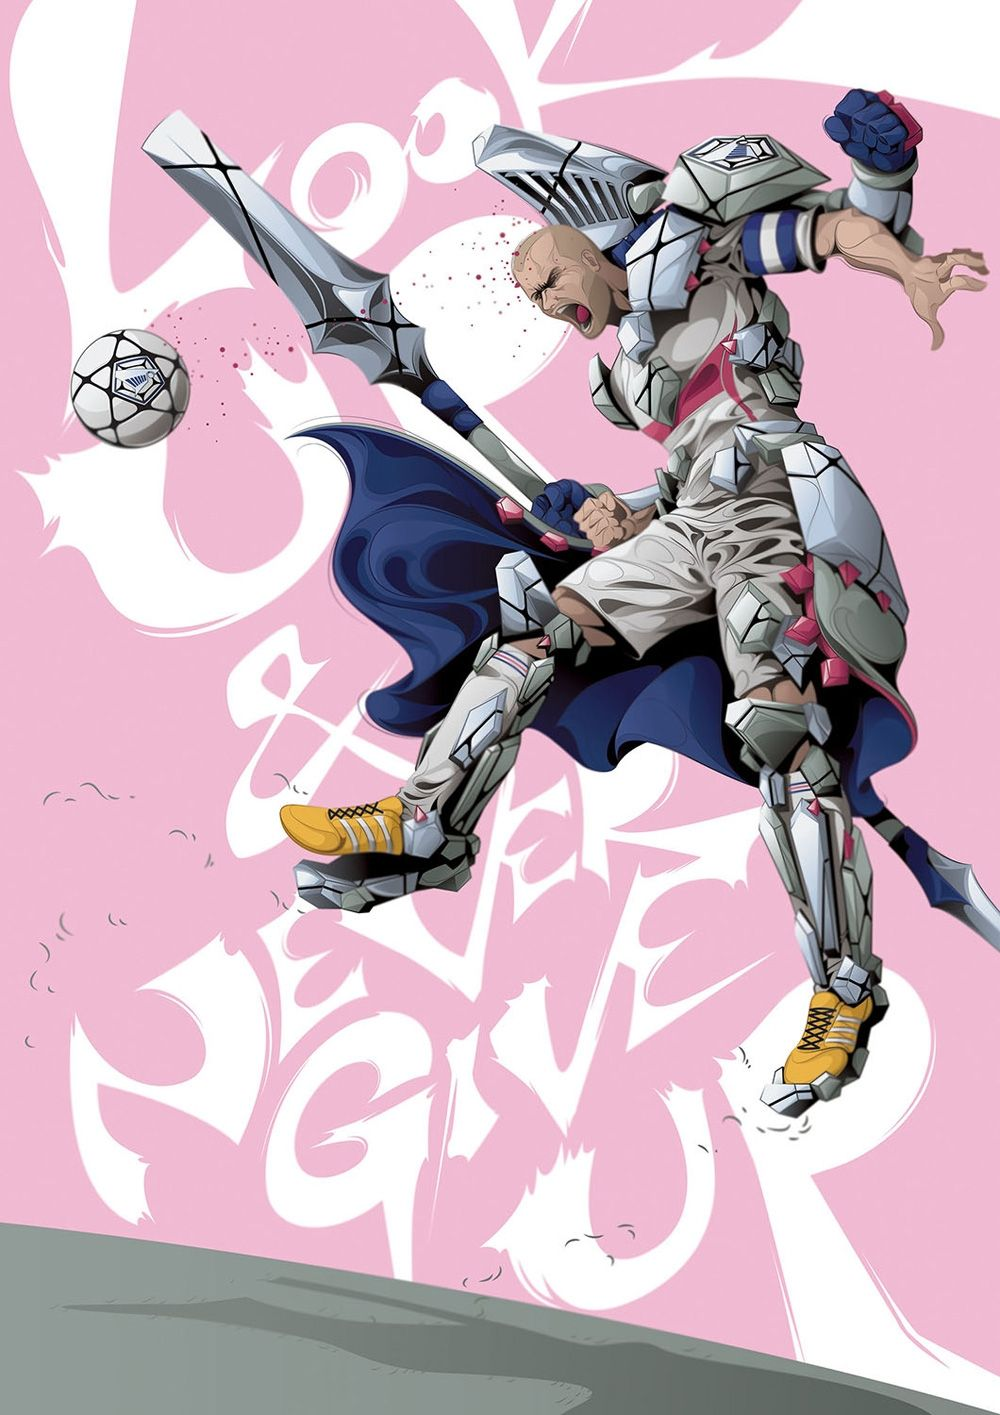 Check out ManTsun's Manga spin on his football heroes